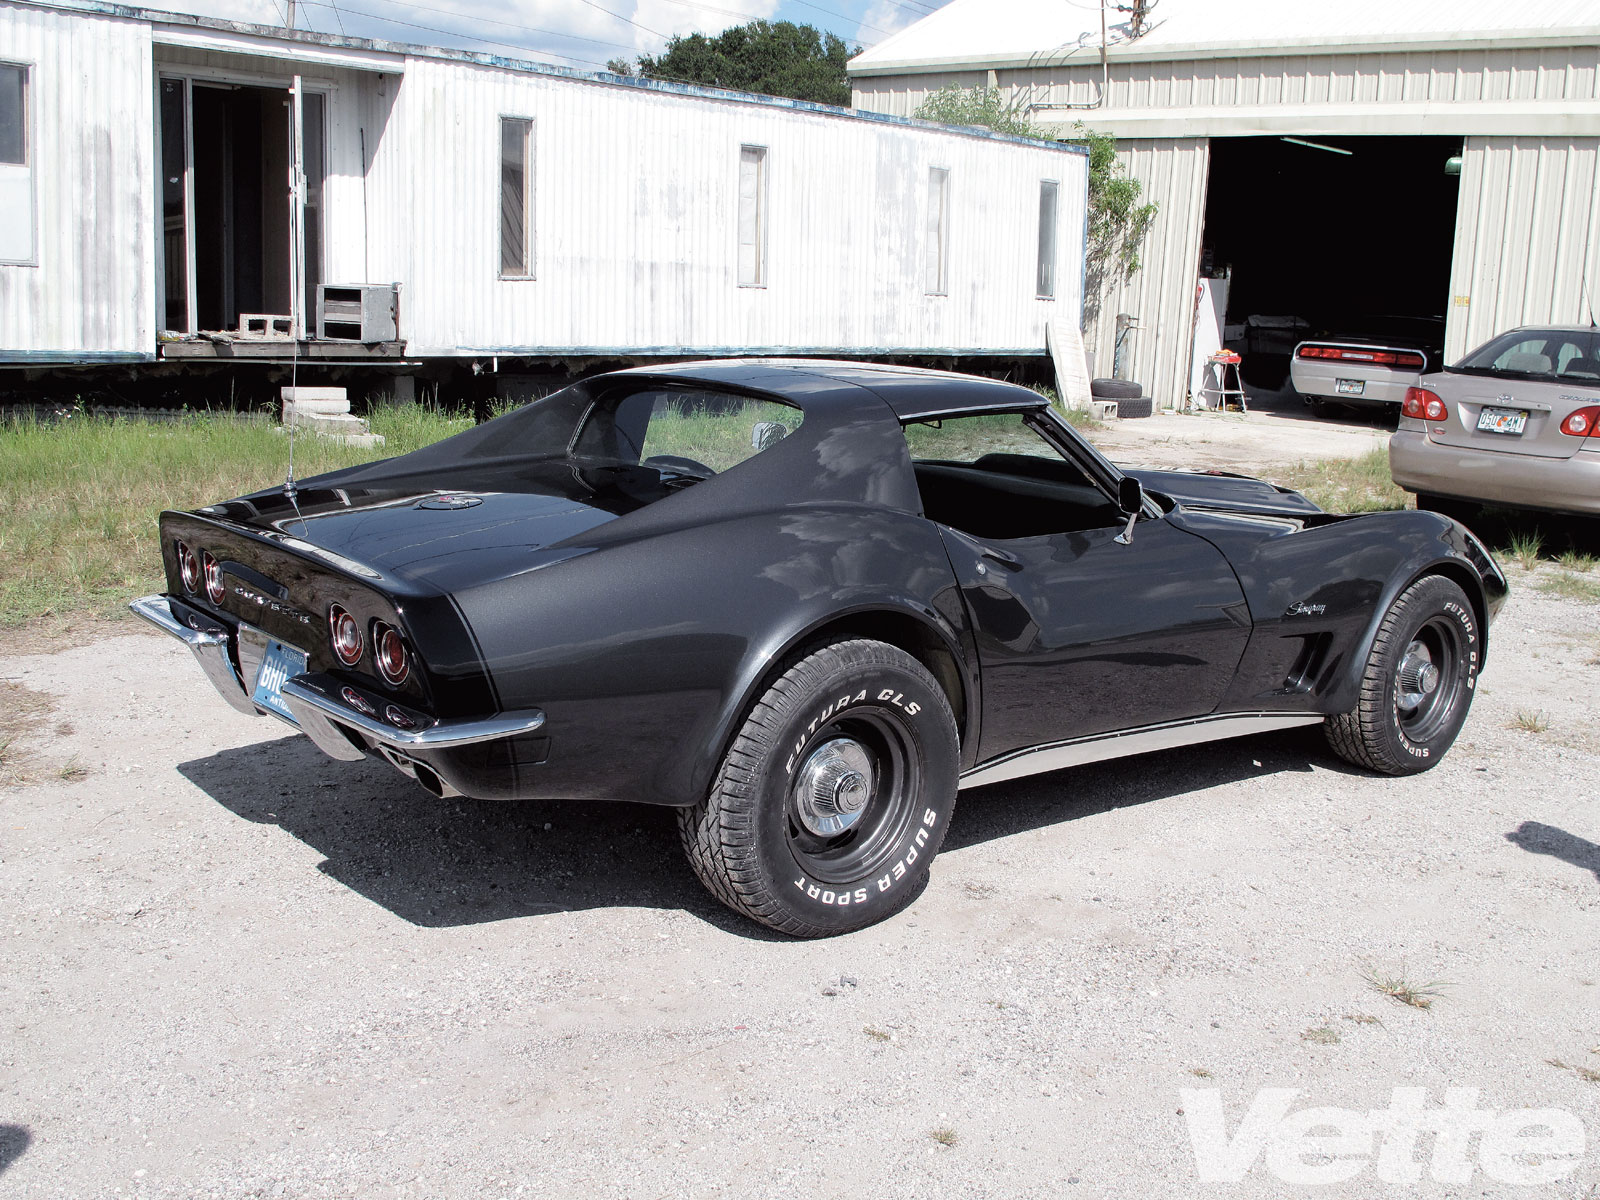 Vemp 1003 32 O 1971 Chevy Corvette Stingray Project Car Black Stingray Side View